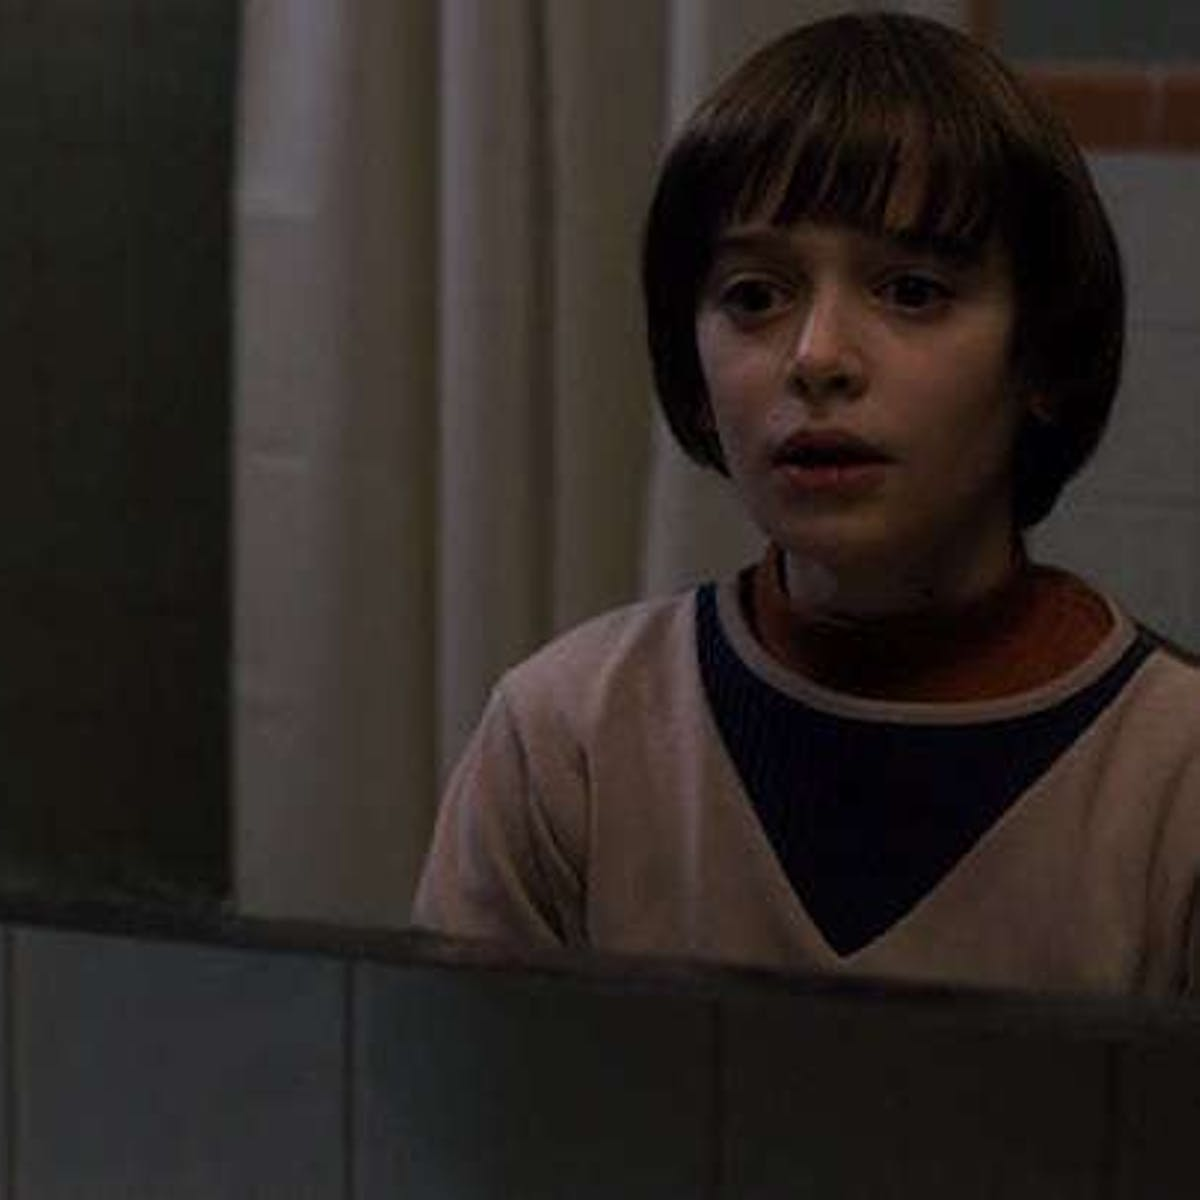 Will Byers Might Turn Into a Demogorgon in 'Stranger Things